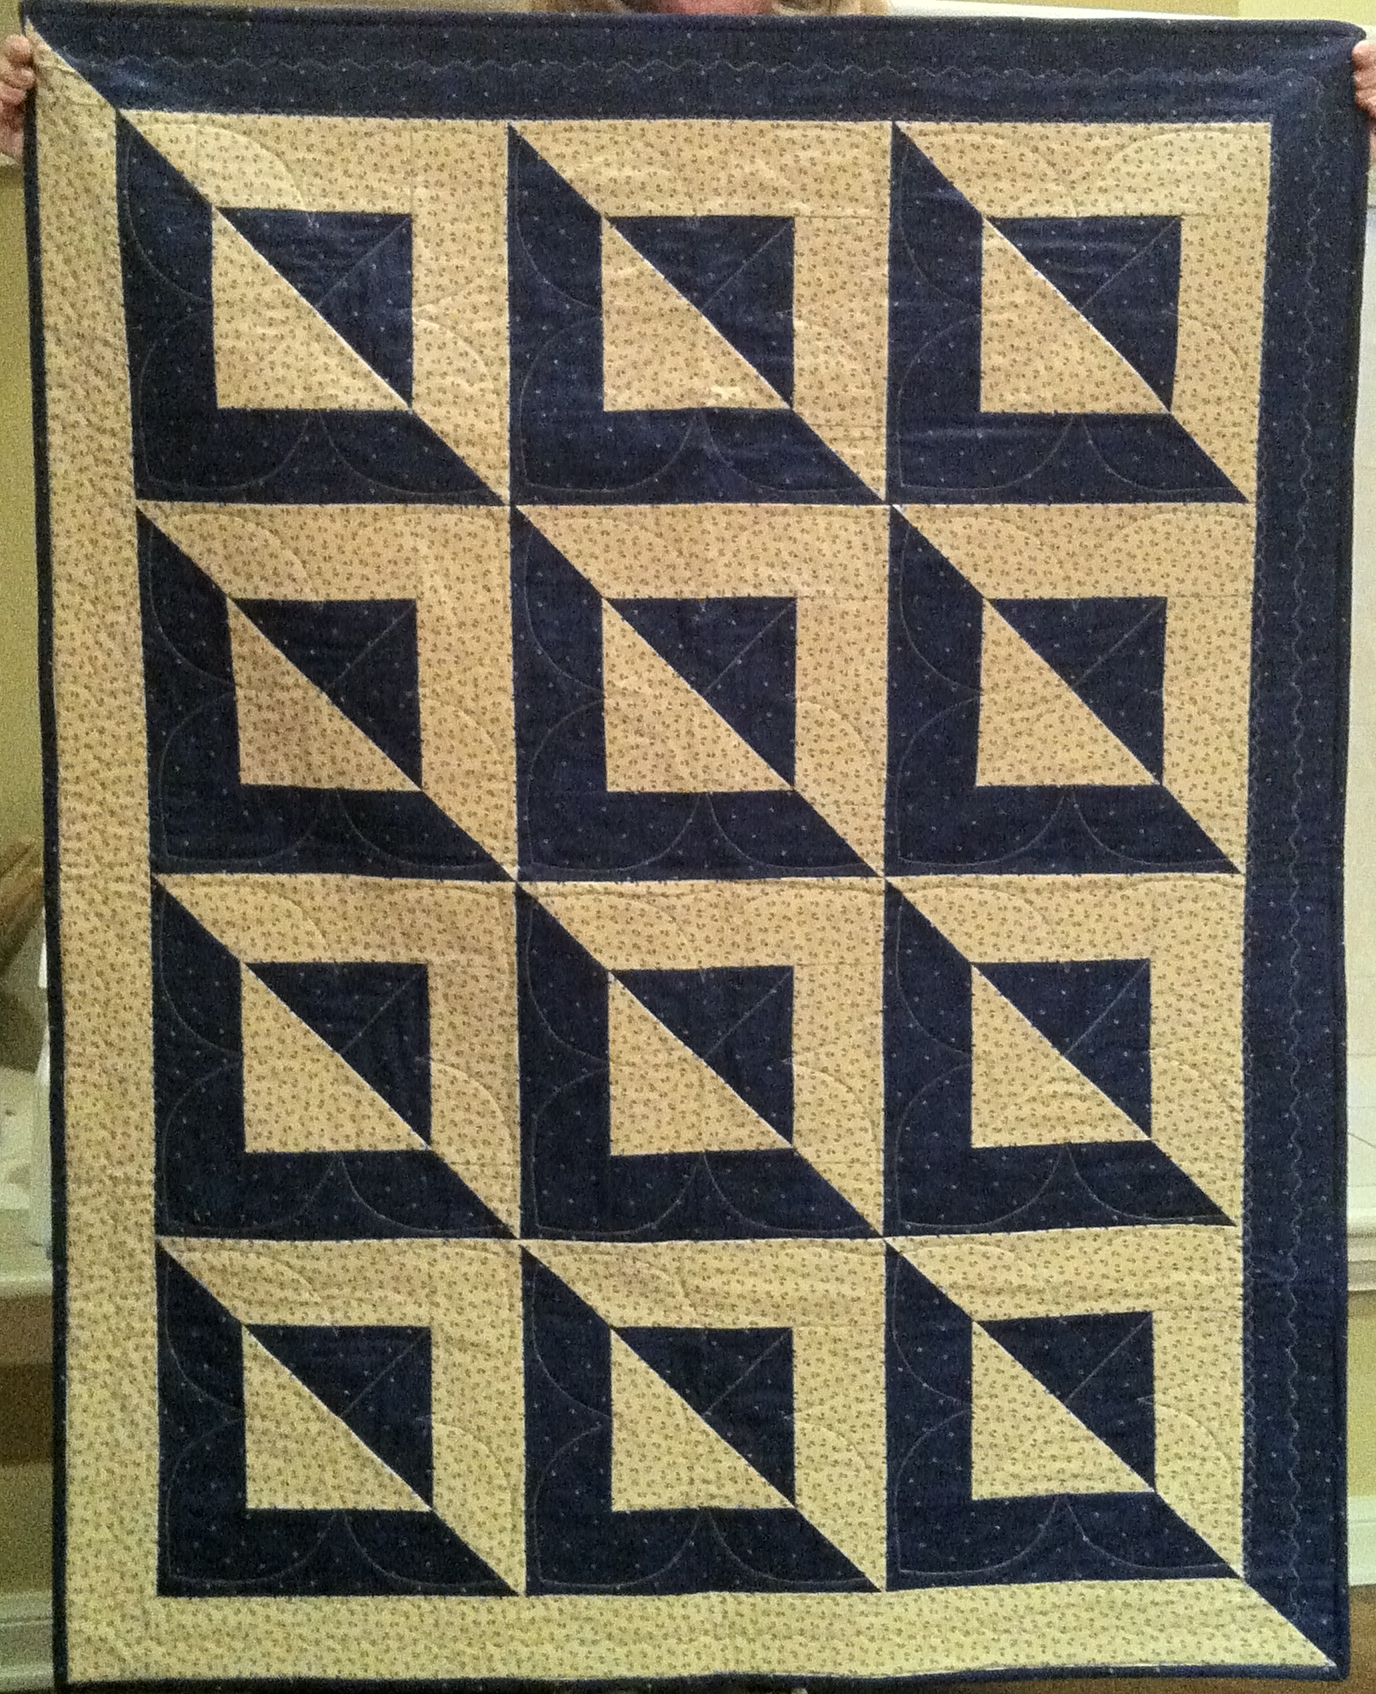 February 2013 Quilt